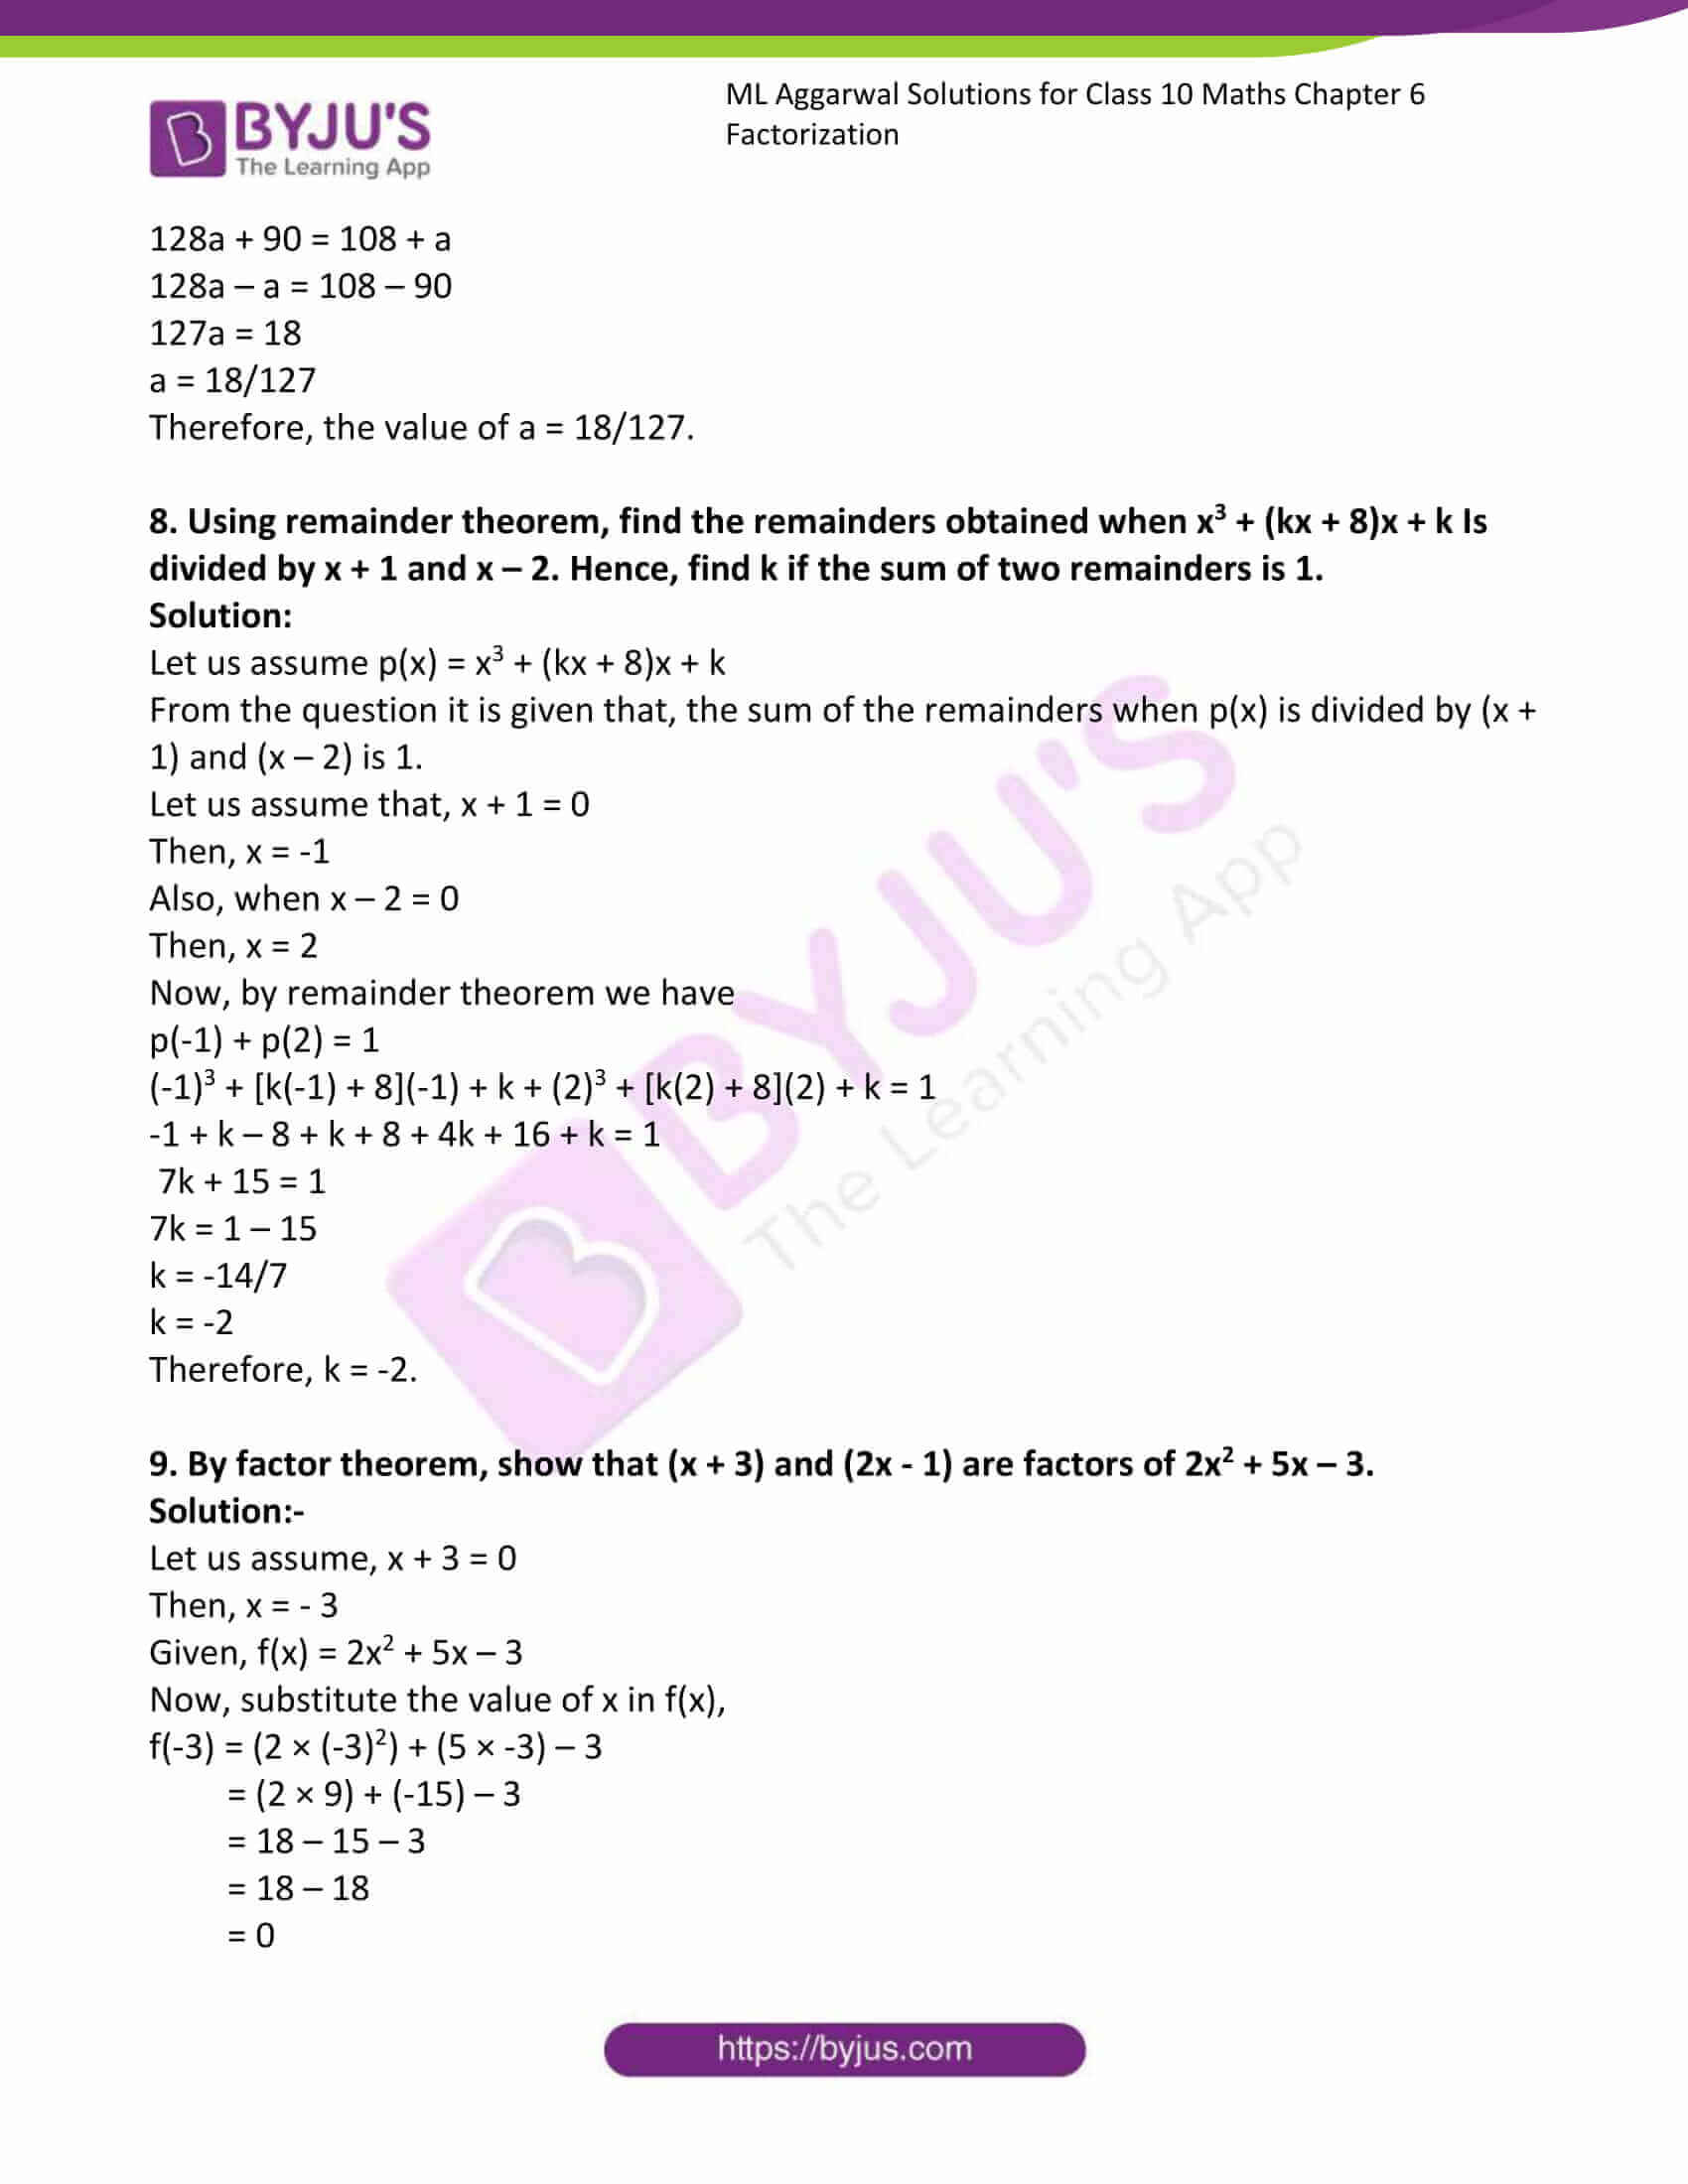 ml aggarwal solutions class 10 maths chapter 6 07